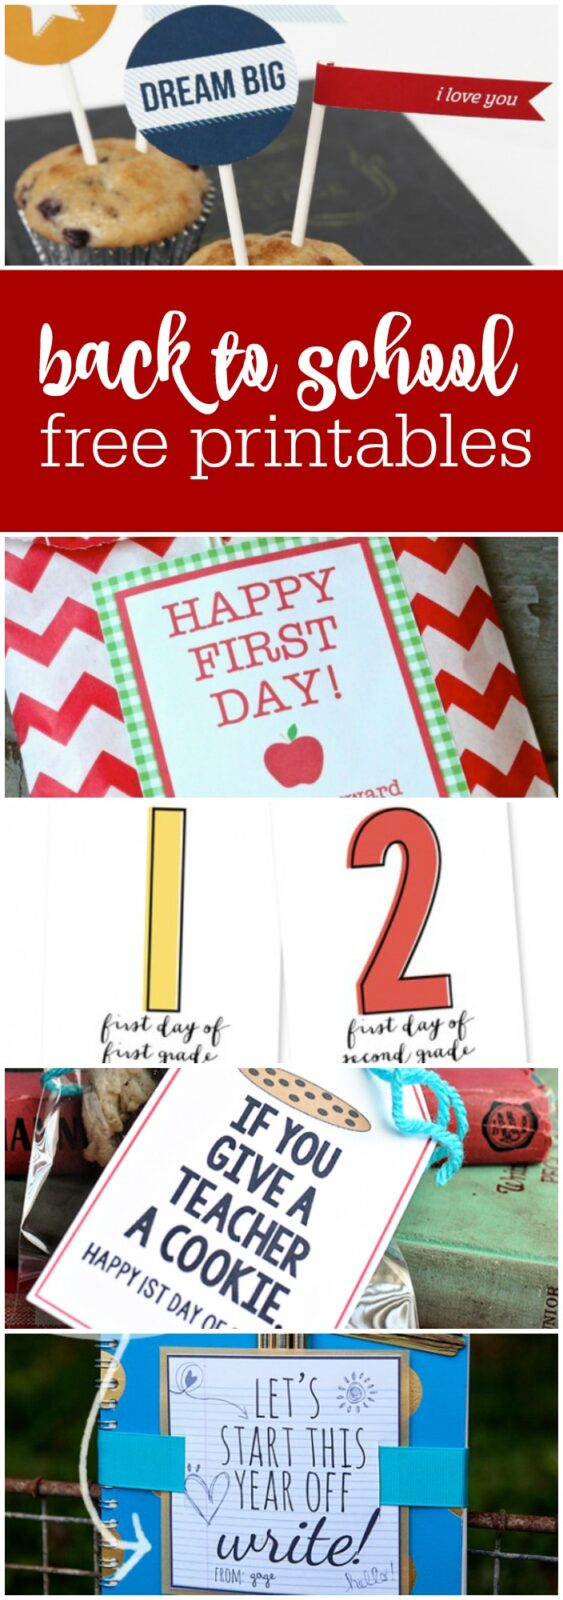 back to school free printables curated by The Party Teacher